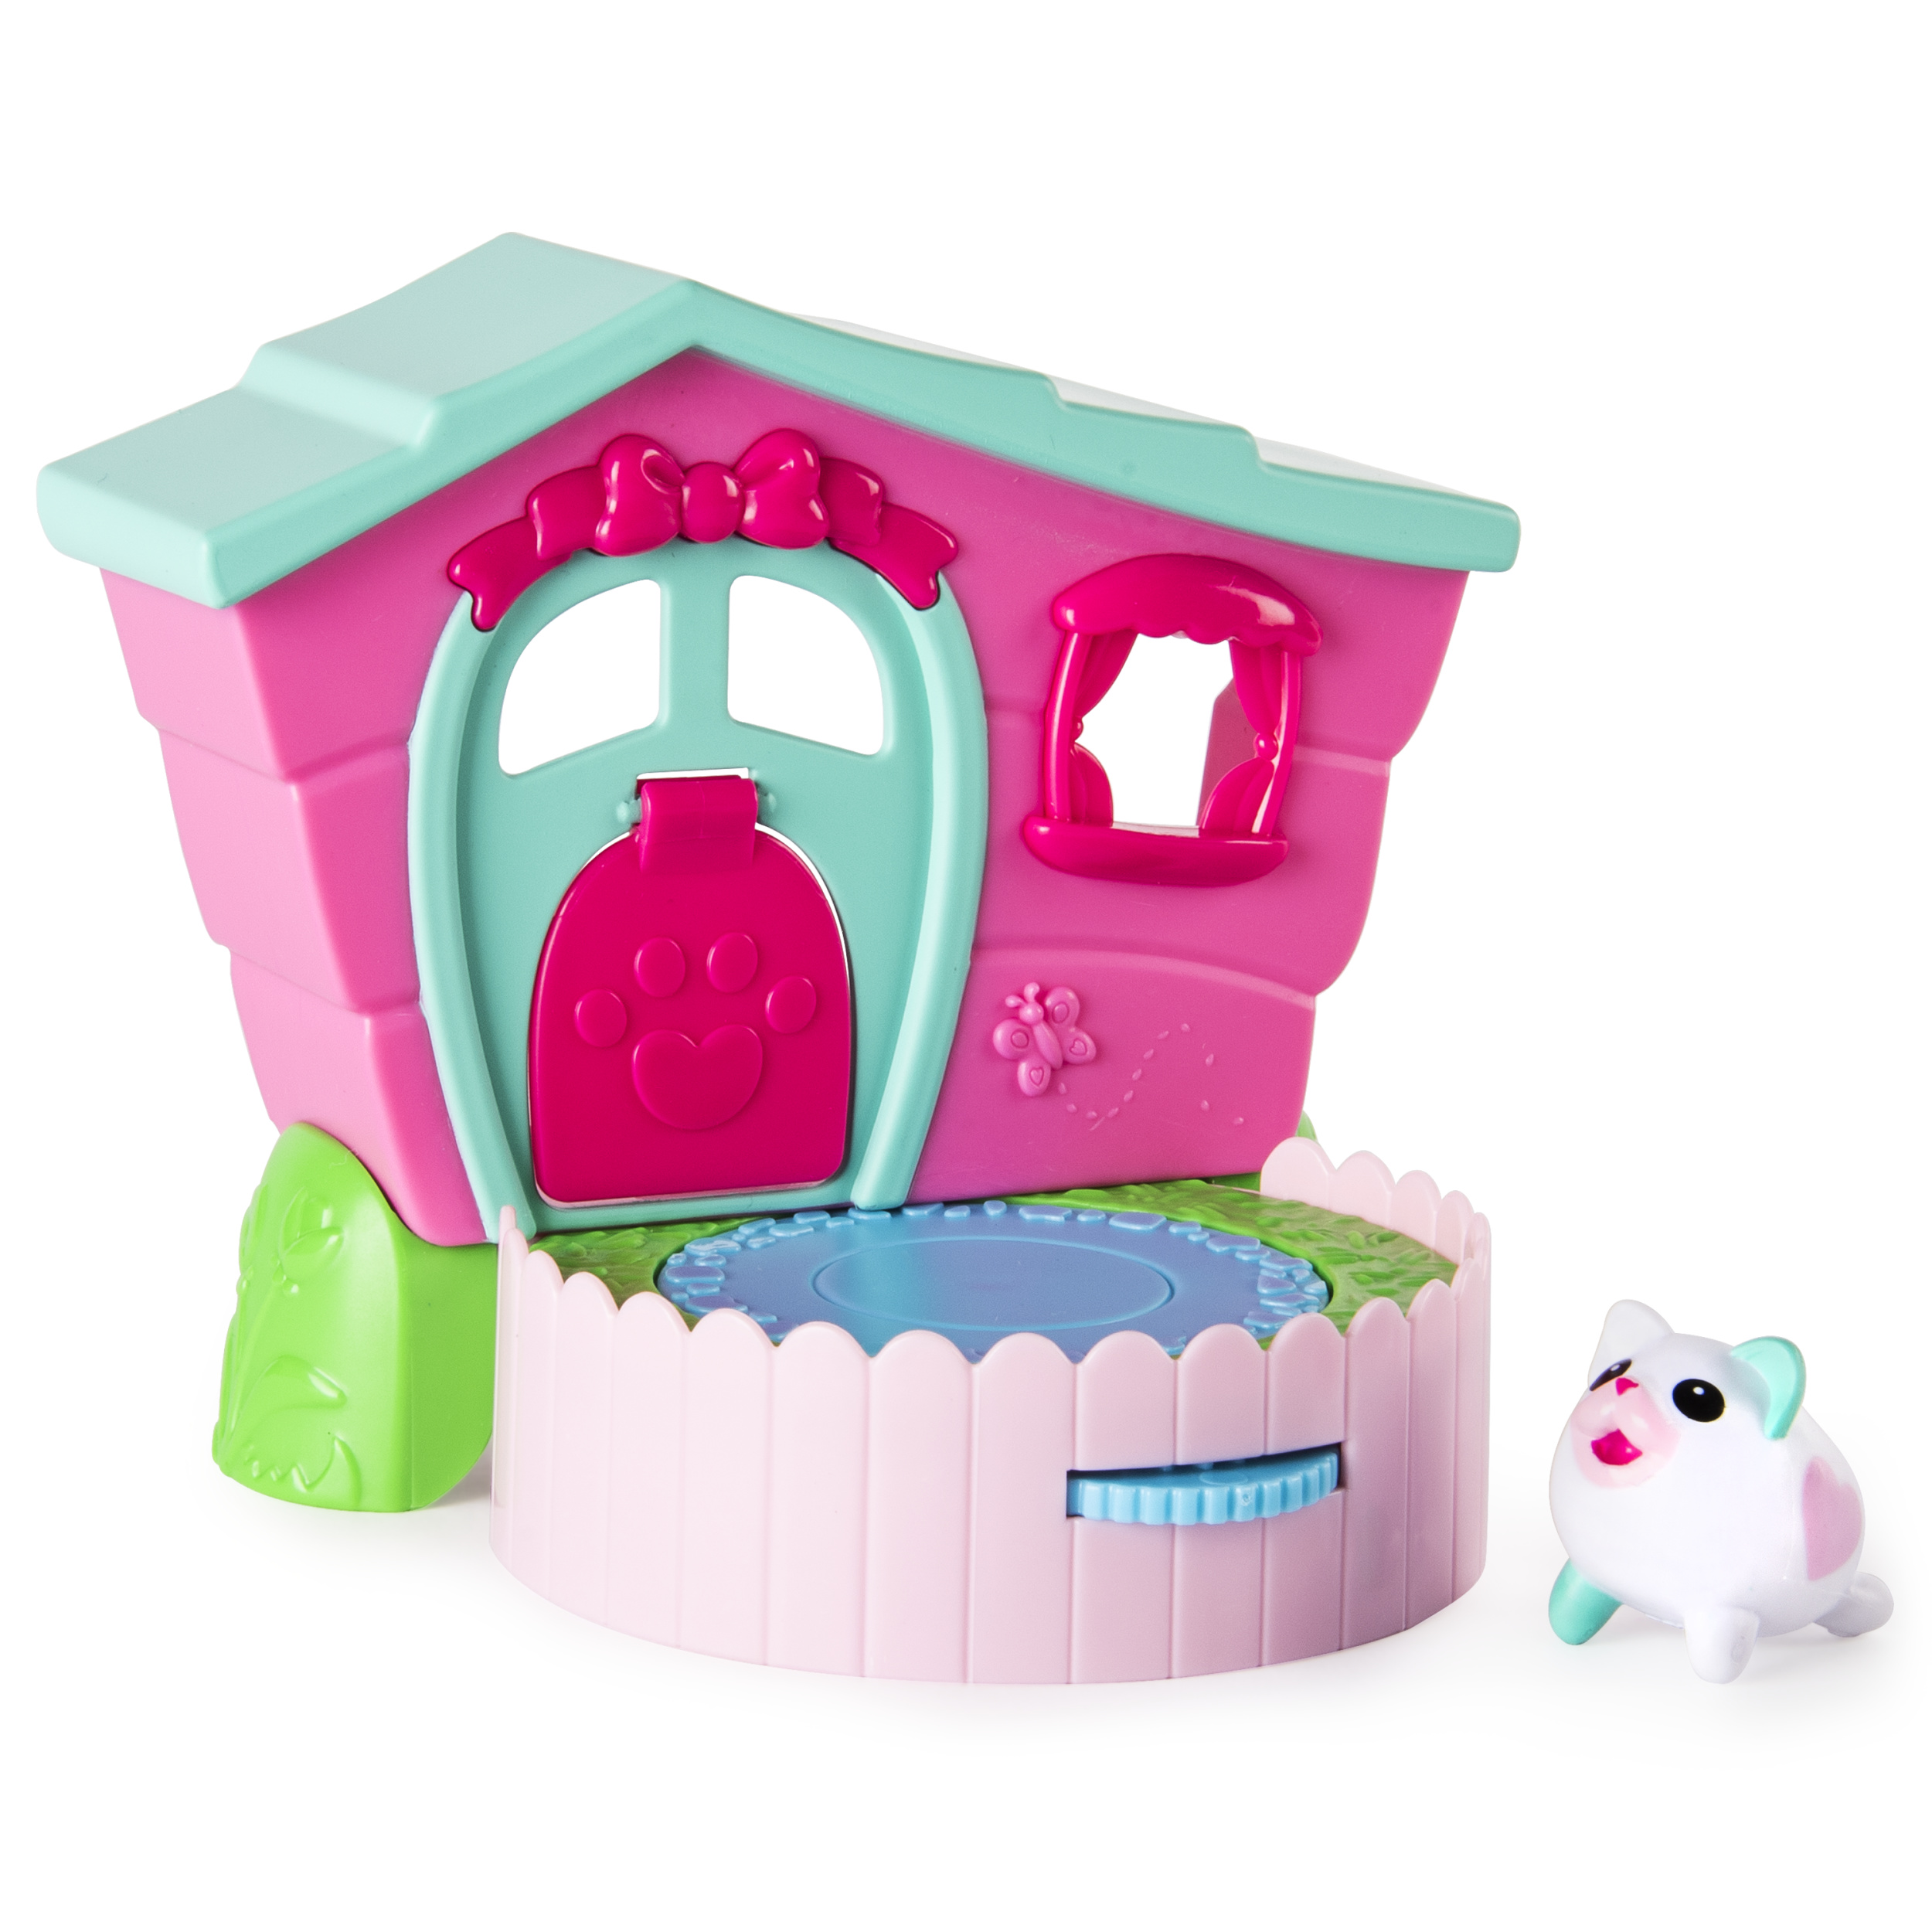 Chubby Puppies & Friends – 2-in 1 Flip N' Play House Playset with Valentia Kitty Collectible Figure